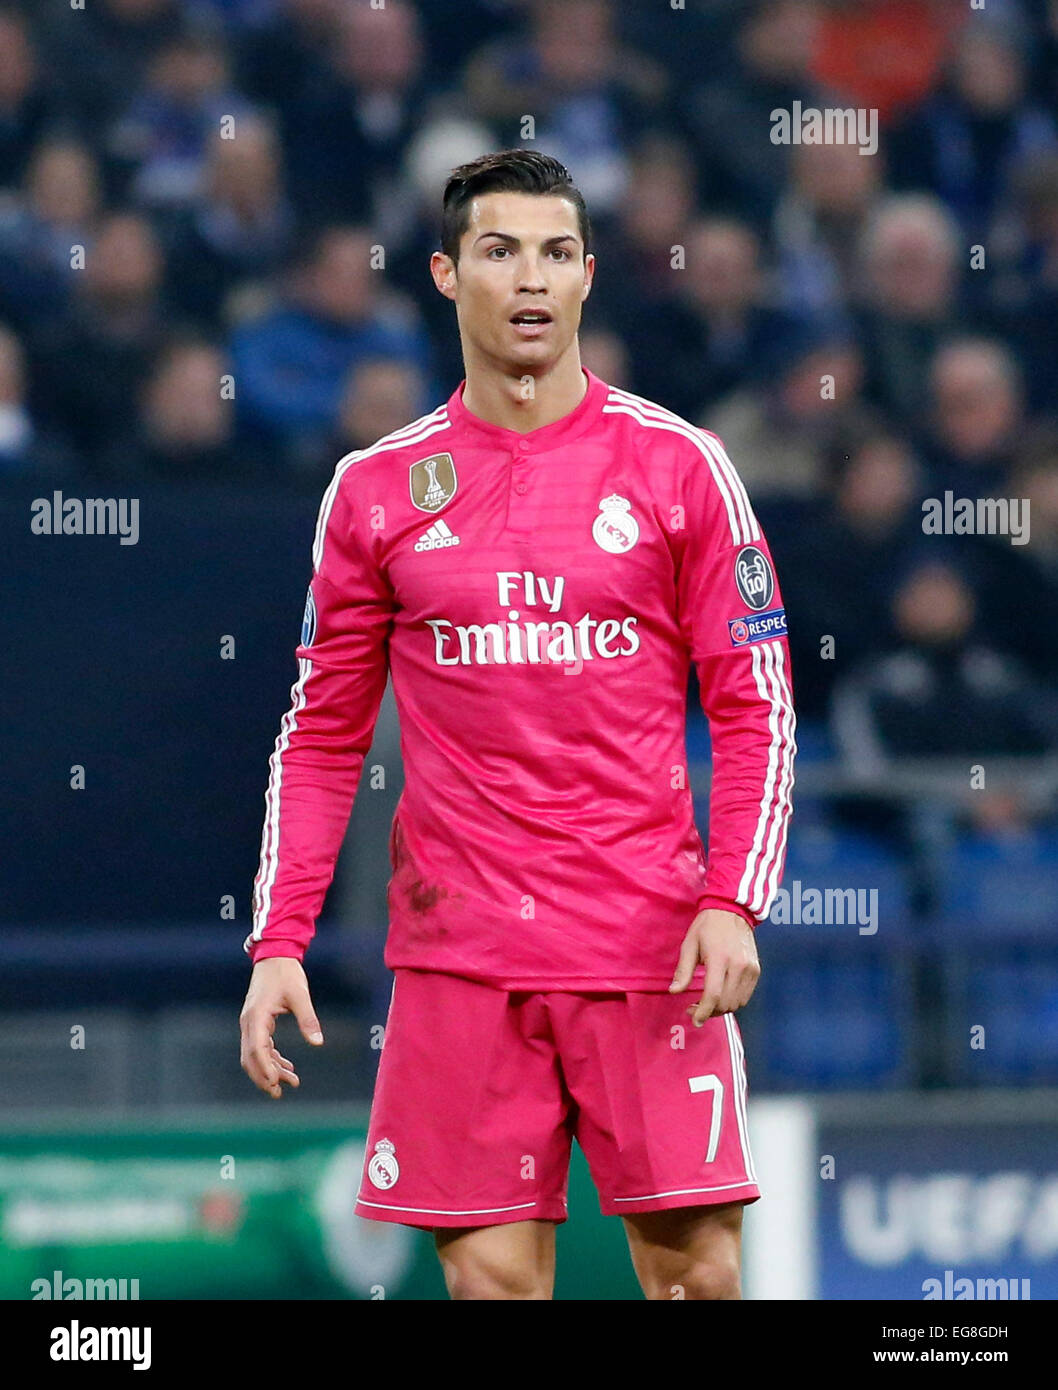 separation shoes 9b9d6 df3b9 Cristiano Ronaldo (Real Madrid) looks on during the ...